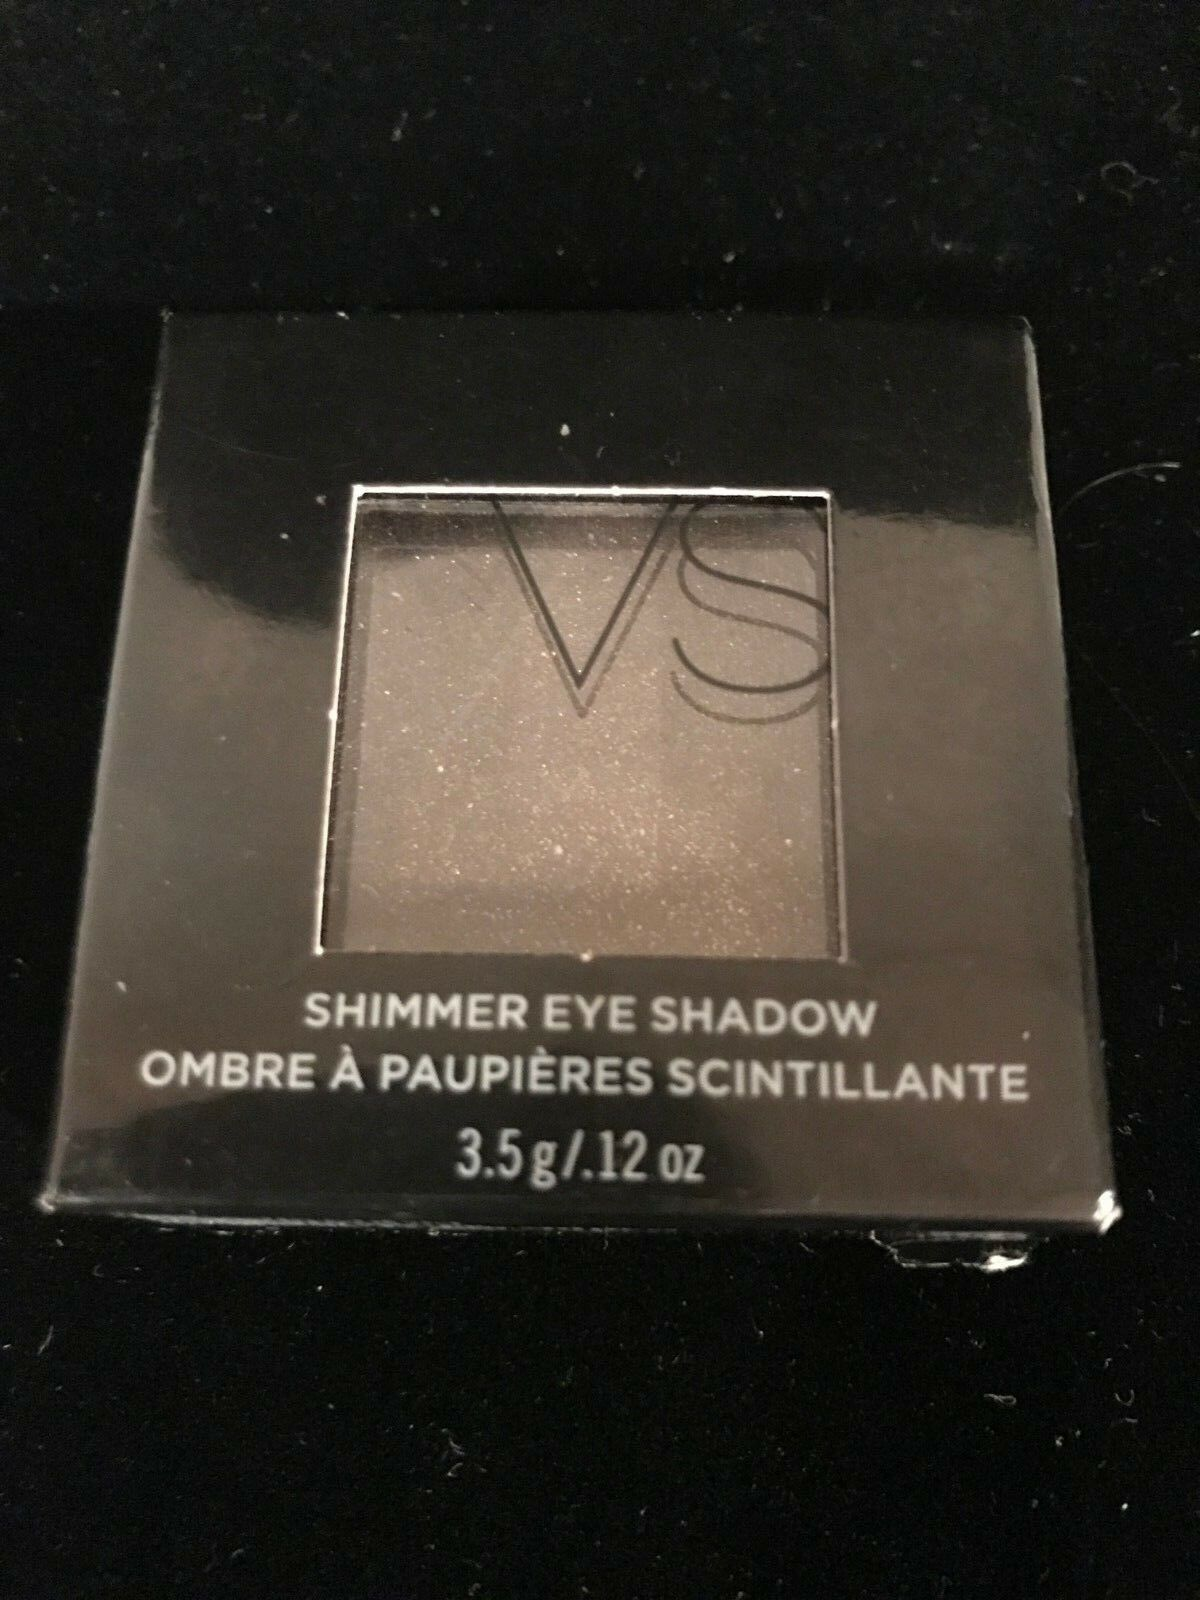 Primary image for Victoria's Secret VS SHIMMER EYE SHADOW After Dark New in Box full size FREESHIP